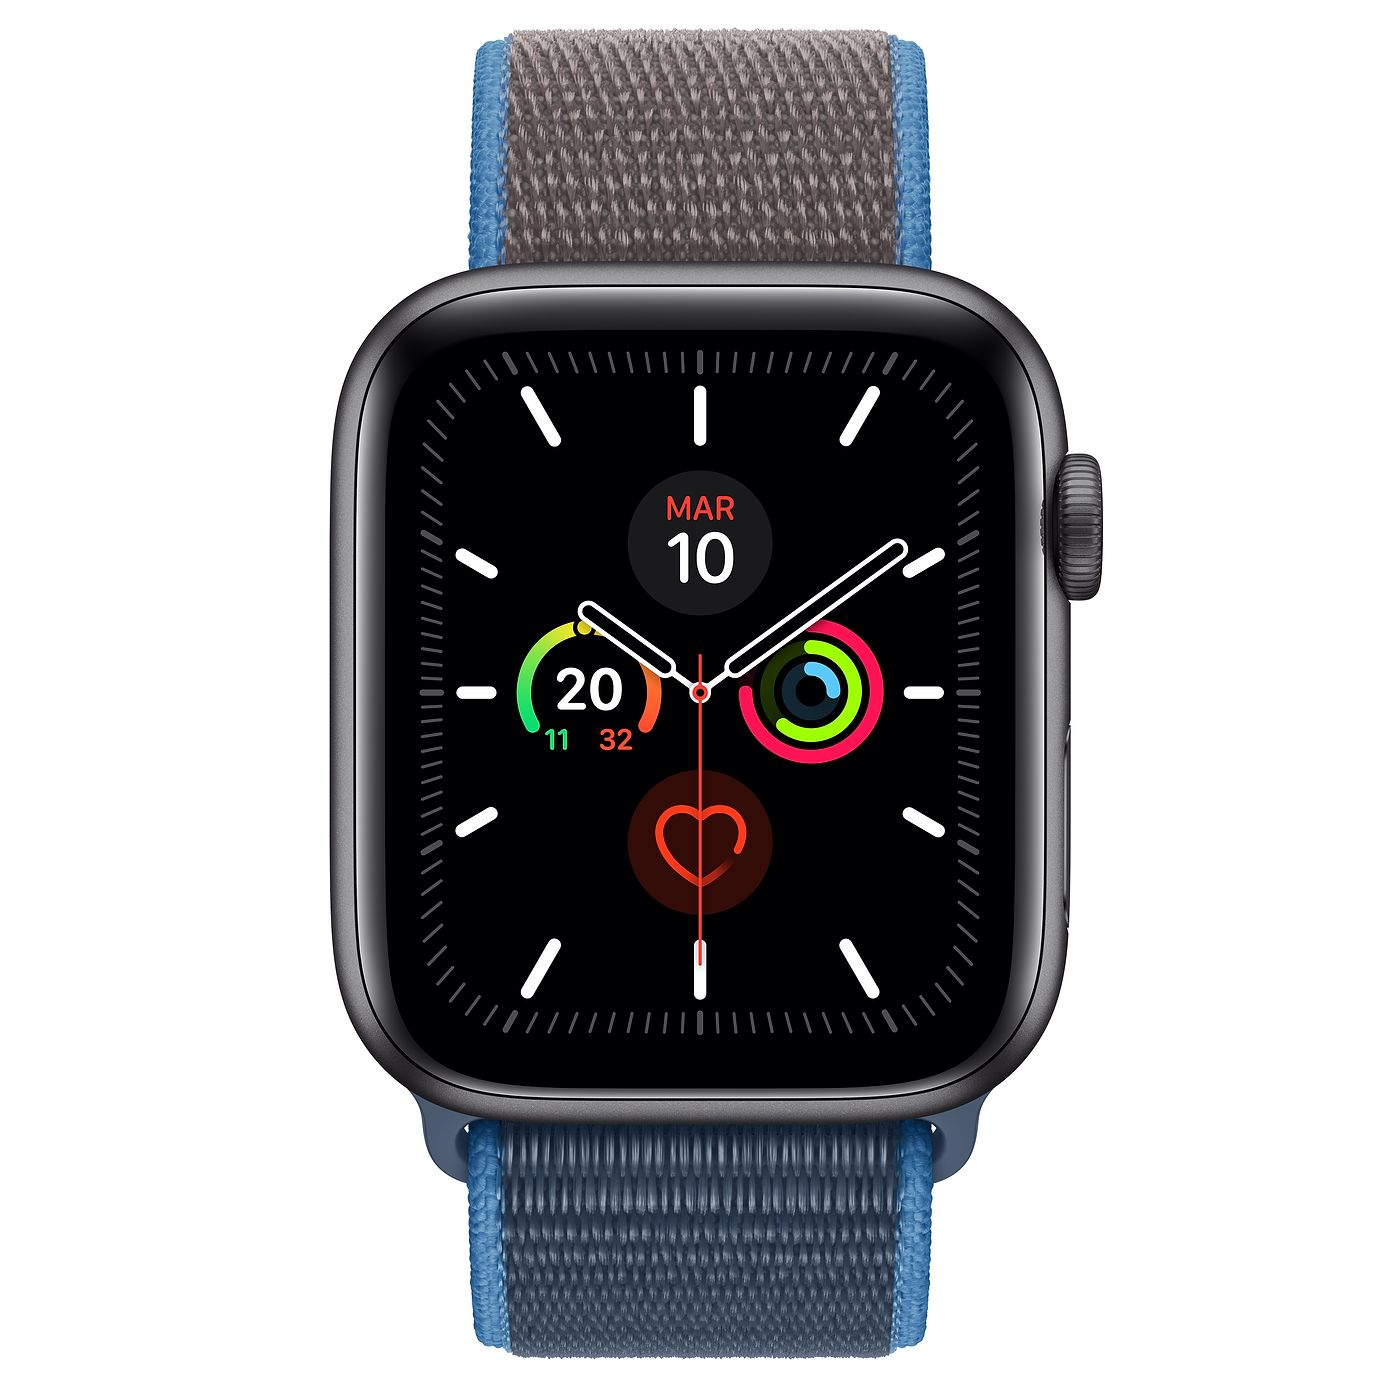 MXMW2_VW_PF+watch-44-alum-spacegray-nc-5s_VW_PF_WF_CO_GEO_ES